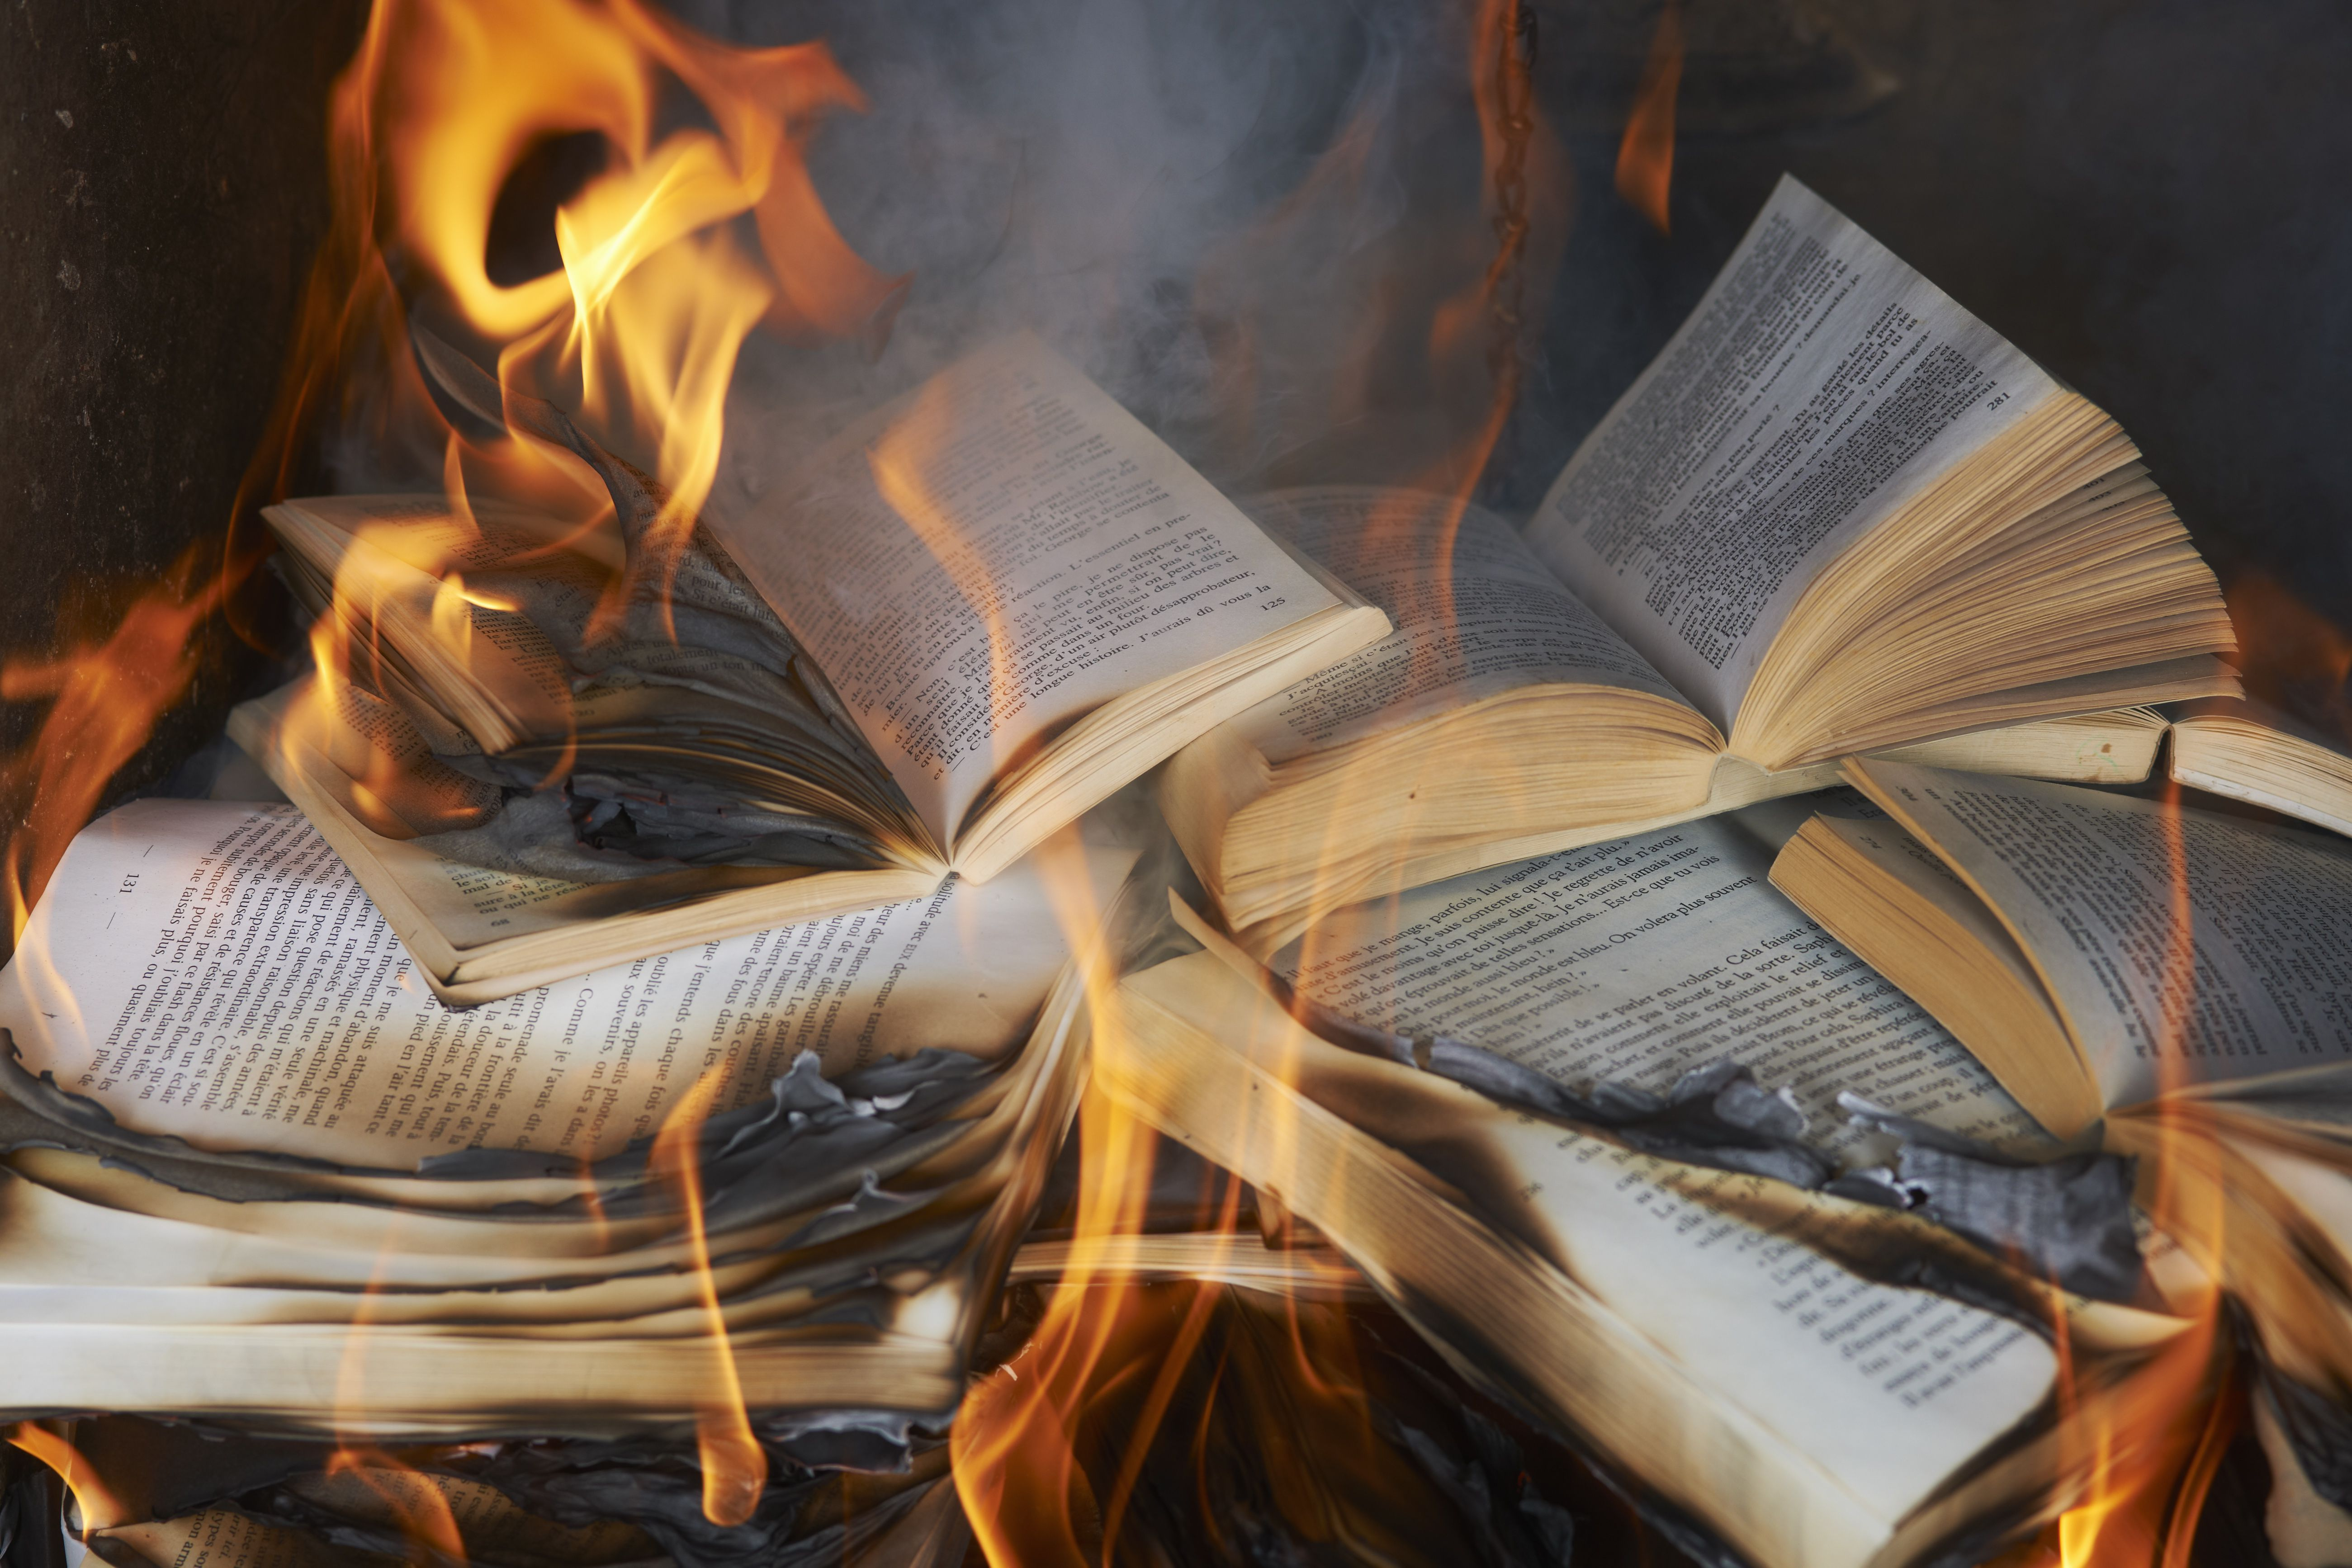 Book burnings throughout history what animals